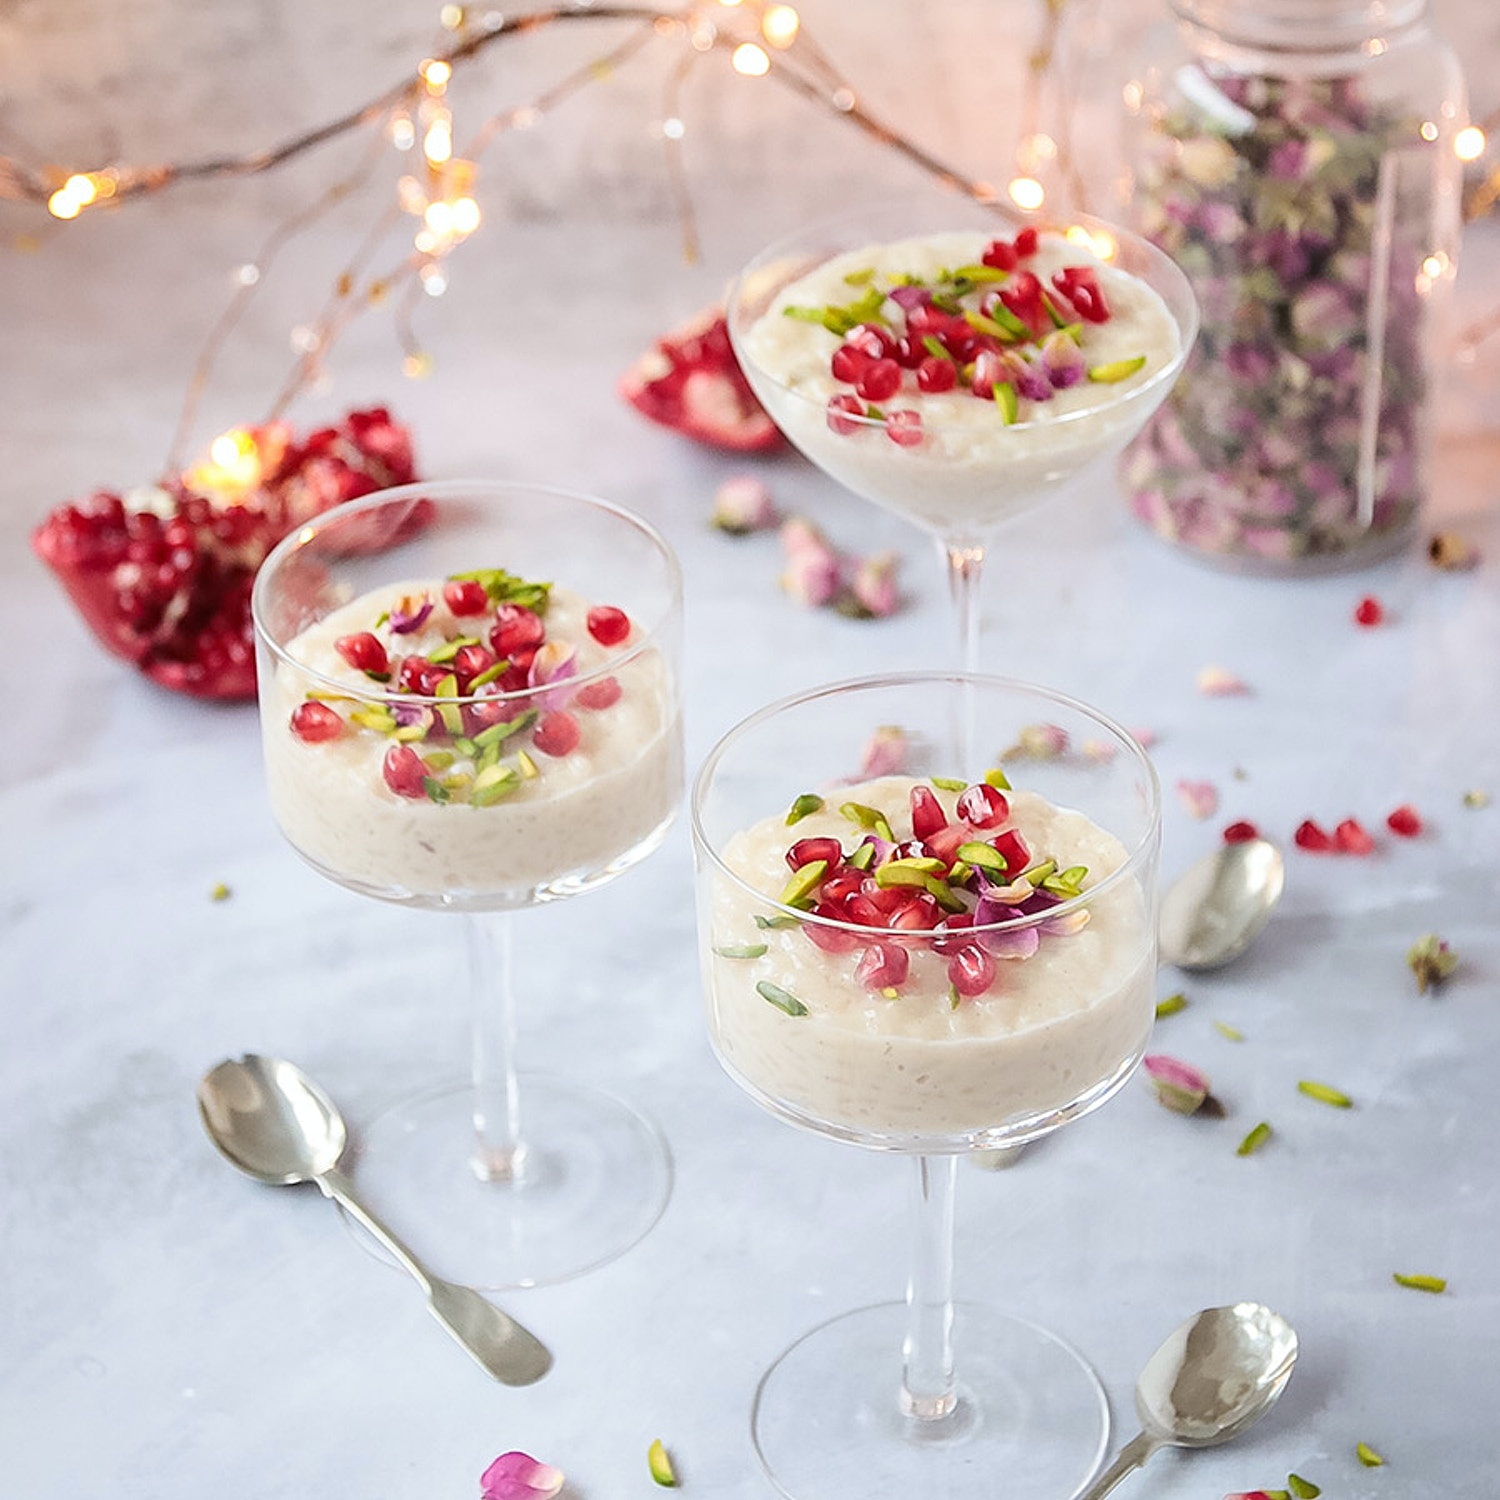 Cardamon and Rose Rice Pudding